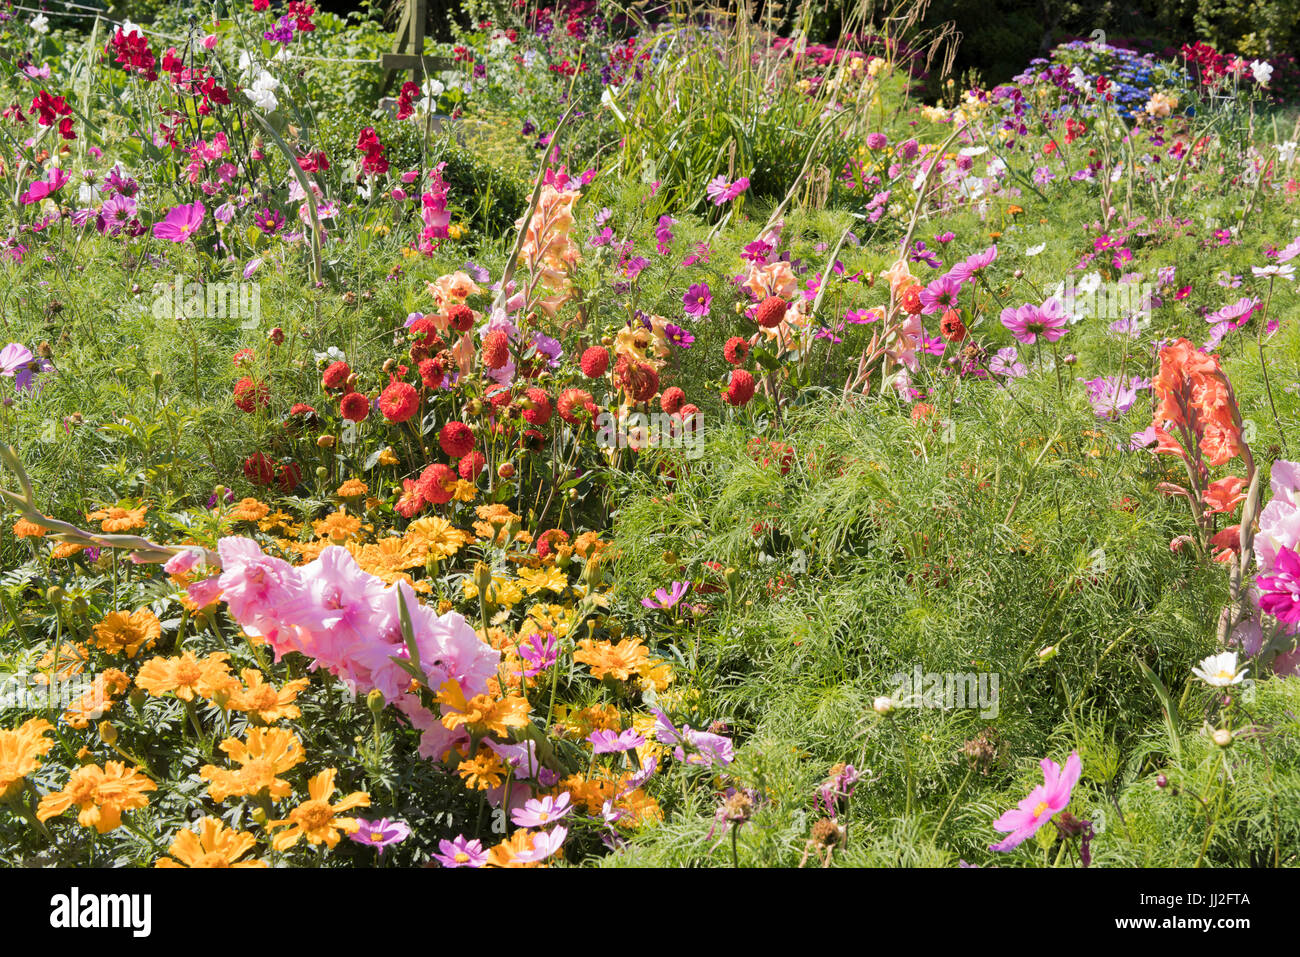 Pretty Cottage Garden Growing A Variety Of Annual And Biannual